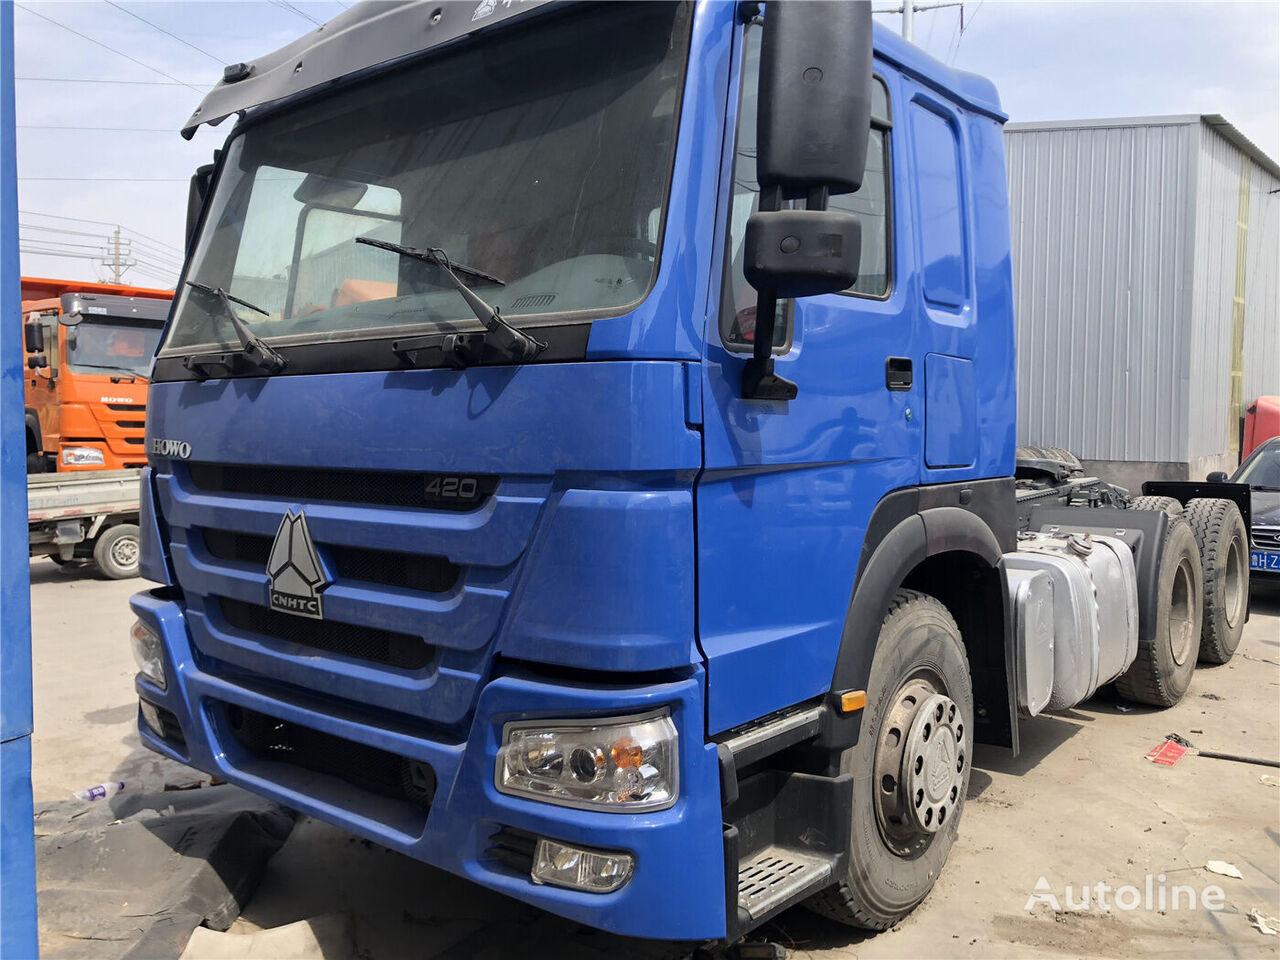 HOWO 420 tractor unit